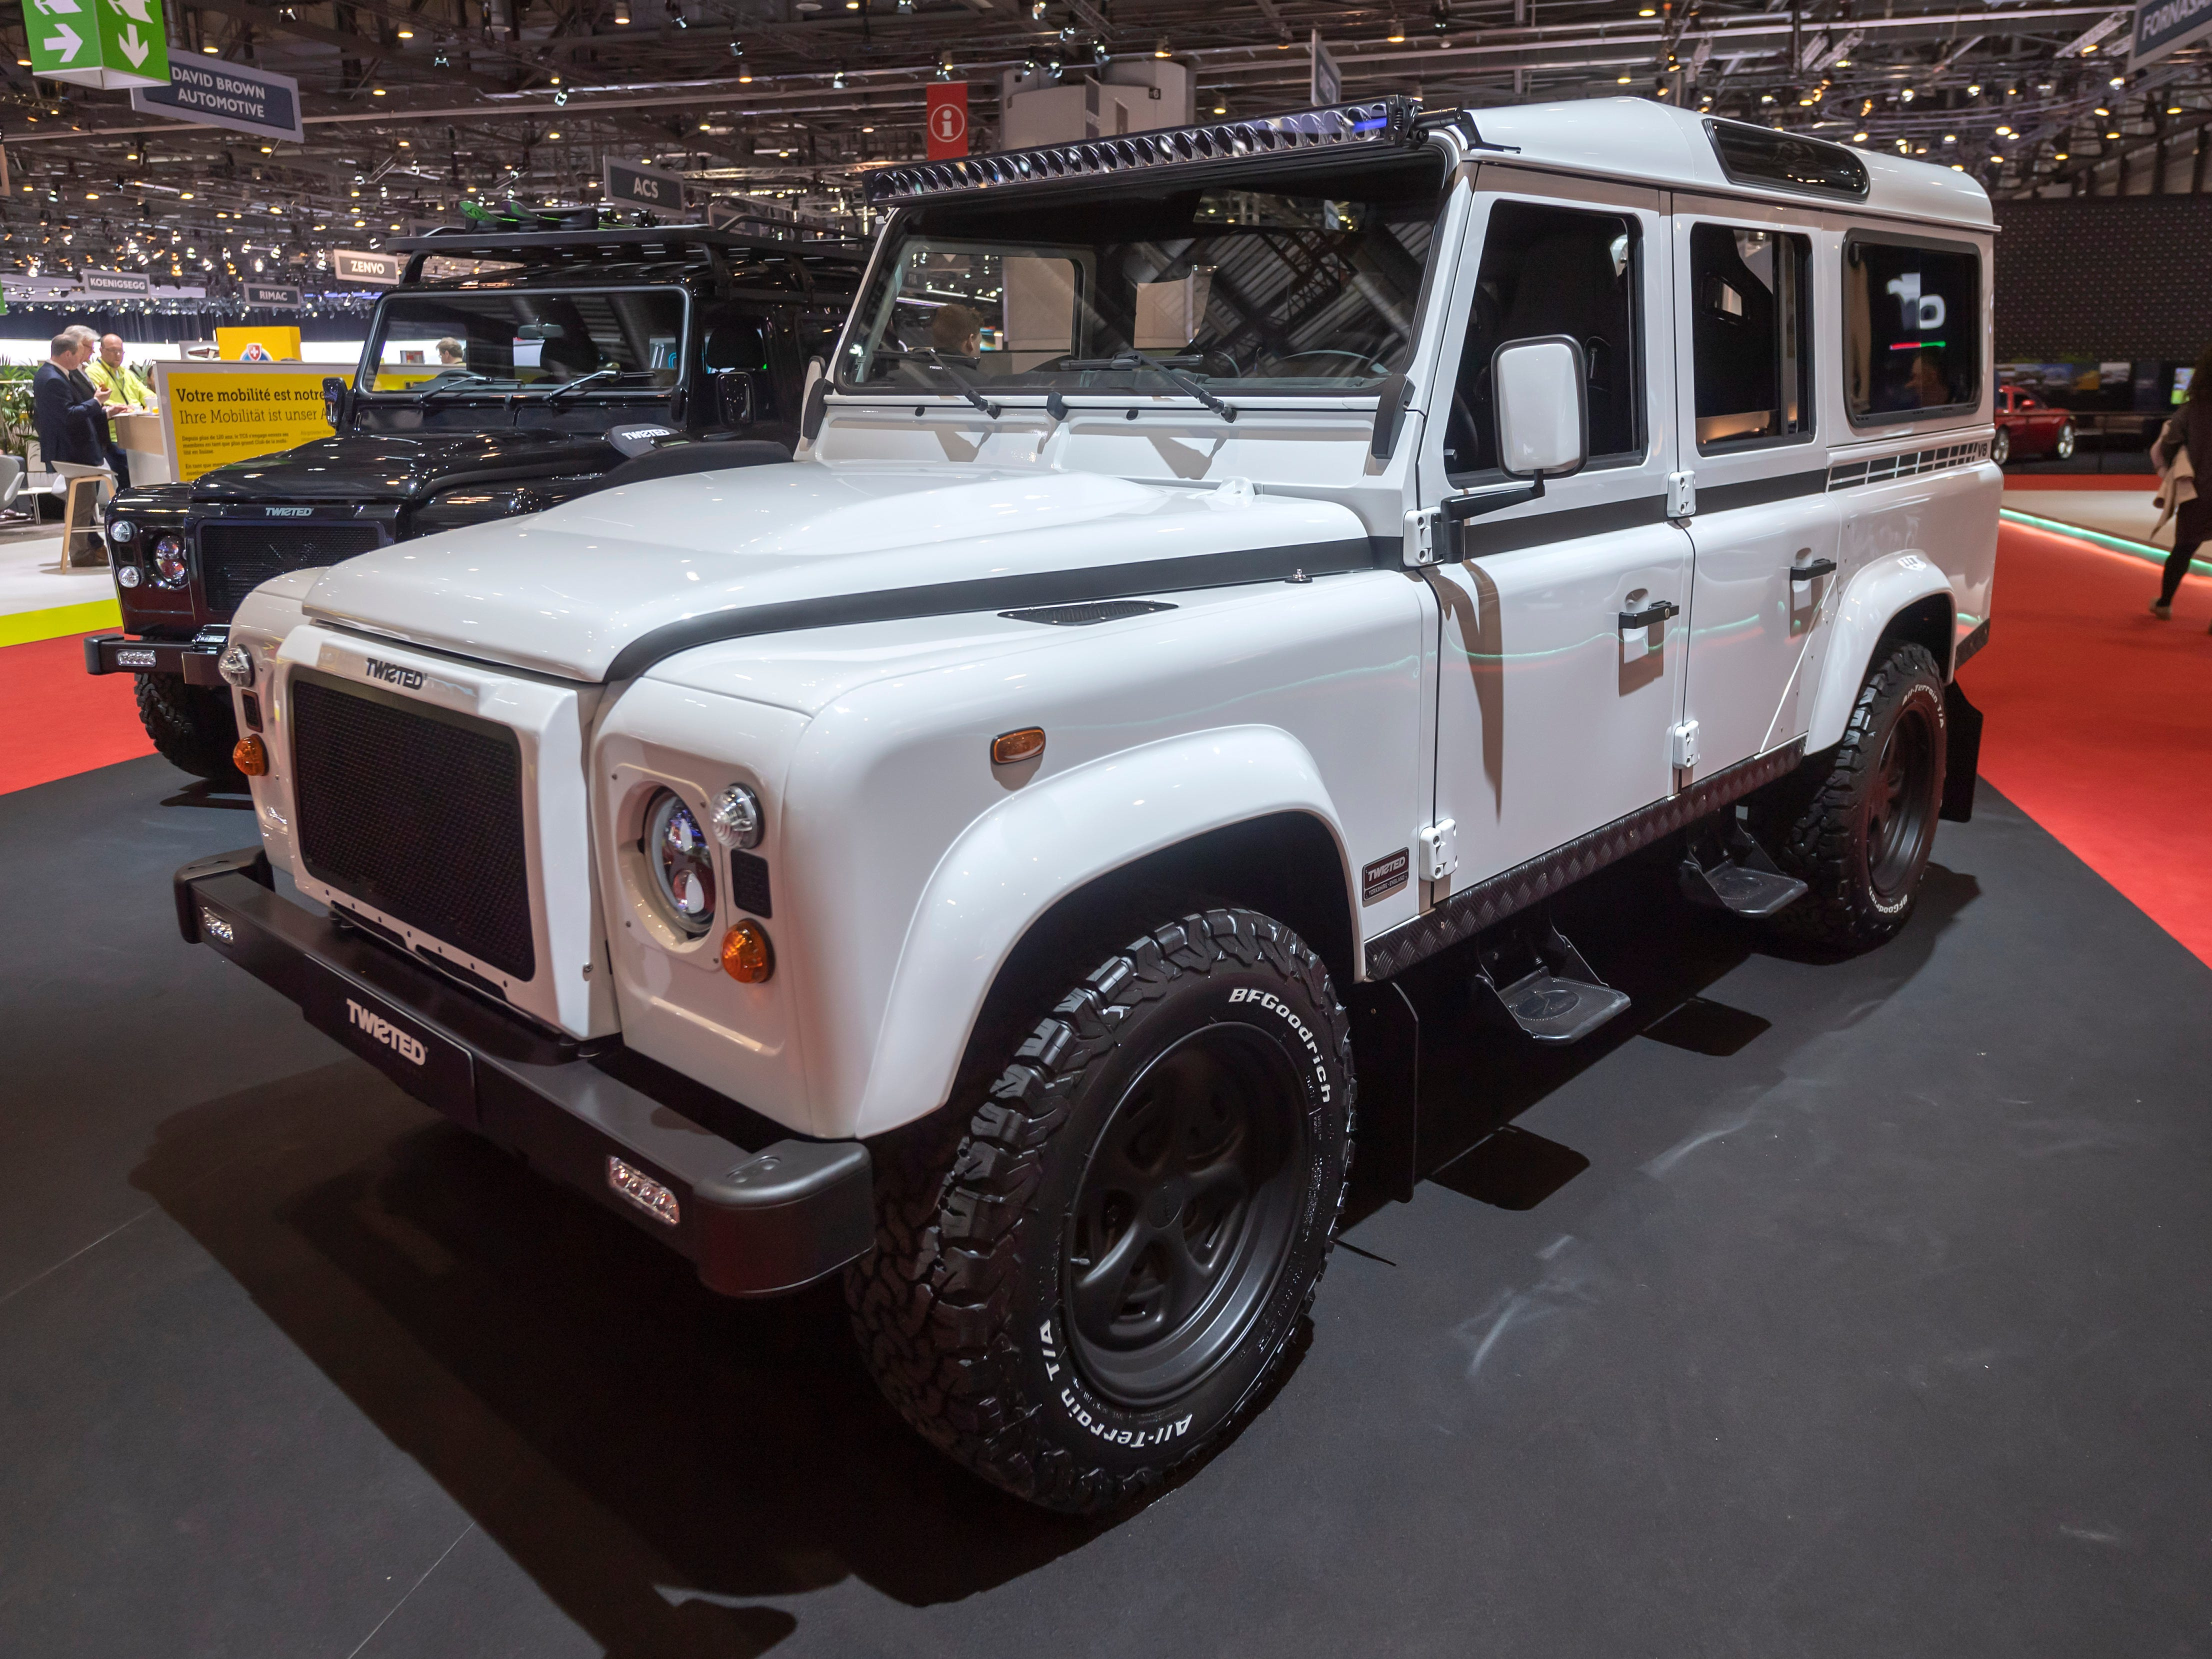 The Twisted Land Rover Defender